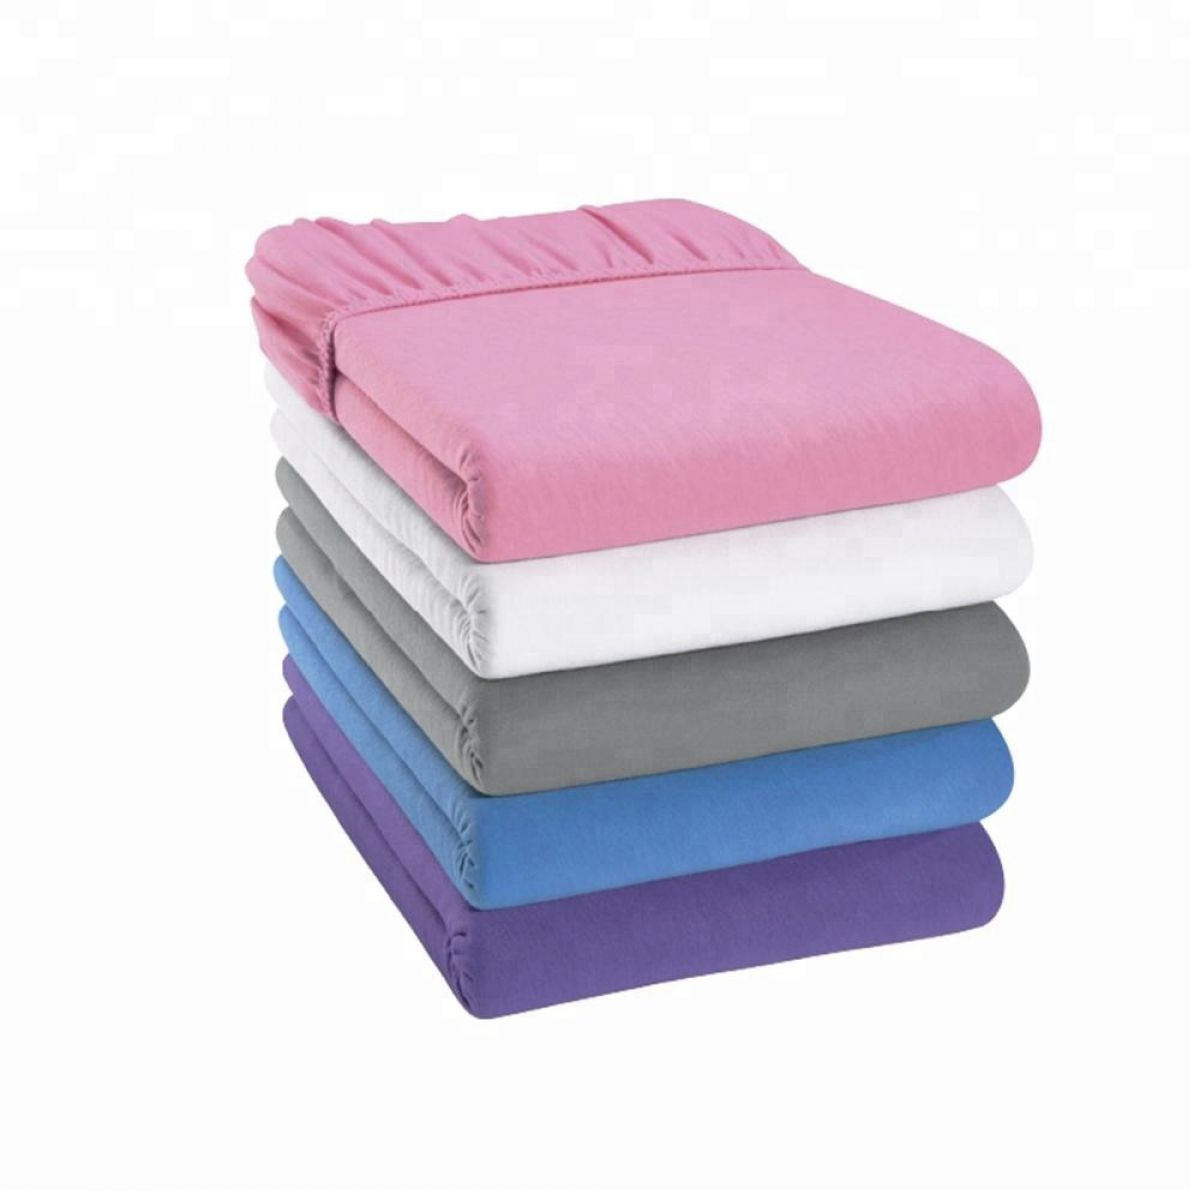 JERSEY fitted sheets - 140x200 cm - mixed colors